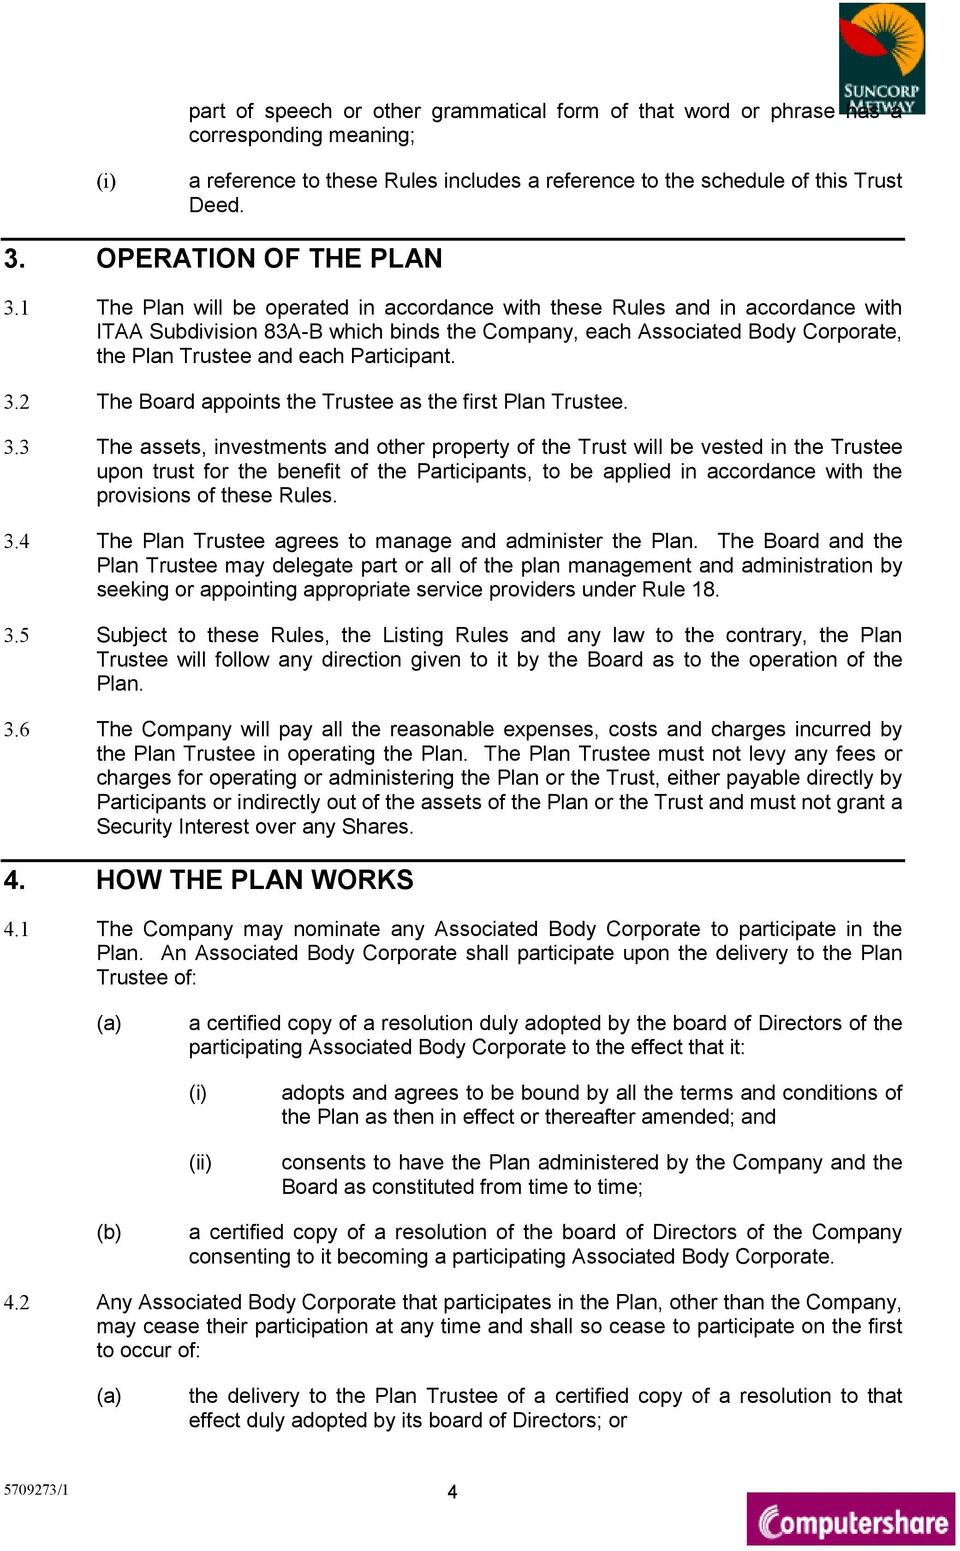 1 The Plan will be operated in accordance with these Rules and in accordance with ITAA Subdivision 83A-B which binds the Company, each Associated Body Corporate, the Plan Trustee and each Participant.